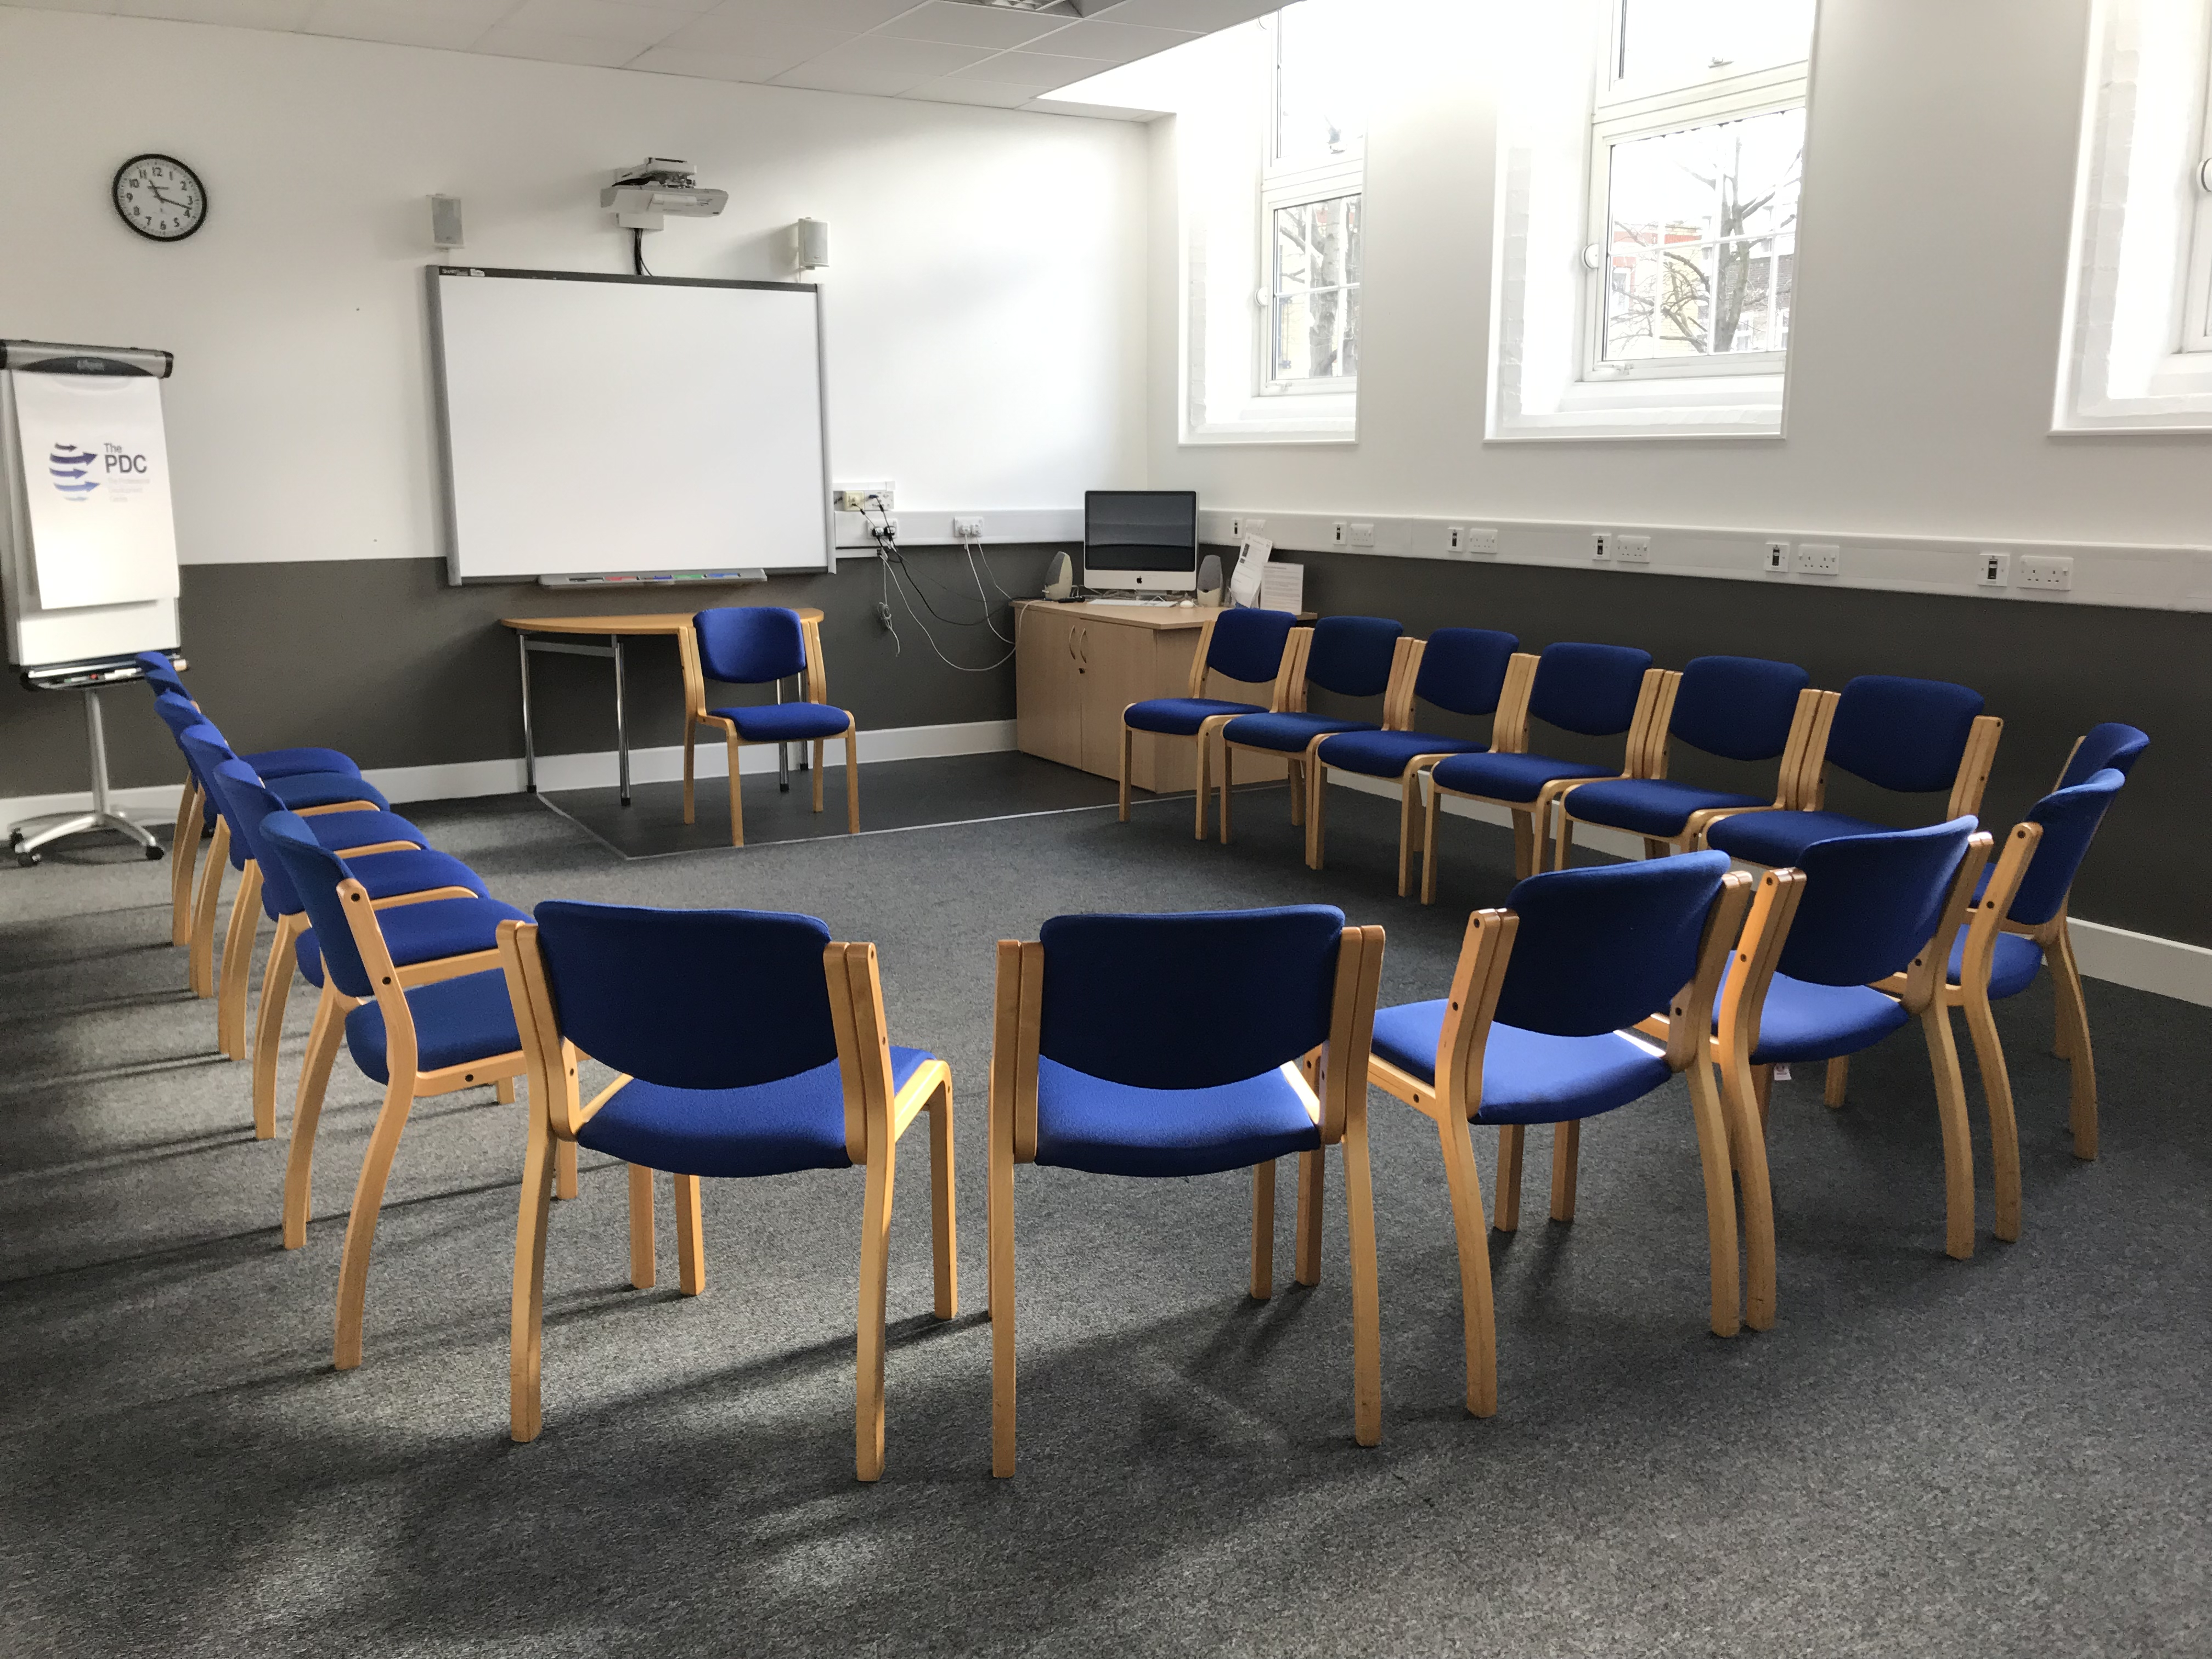 room 106 - ushape chairs only